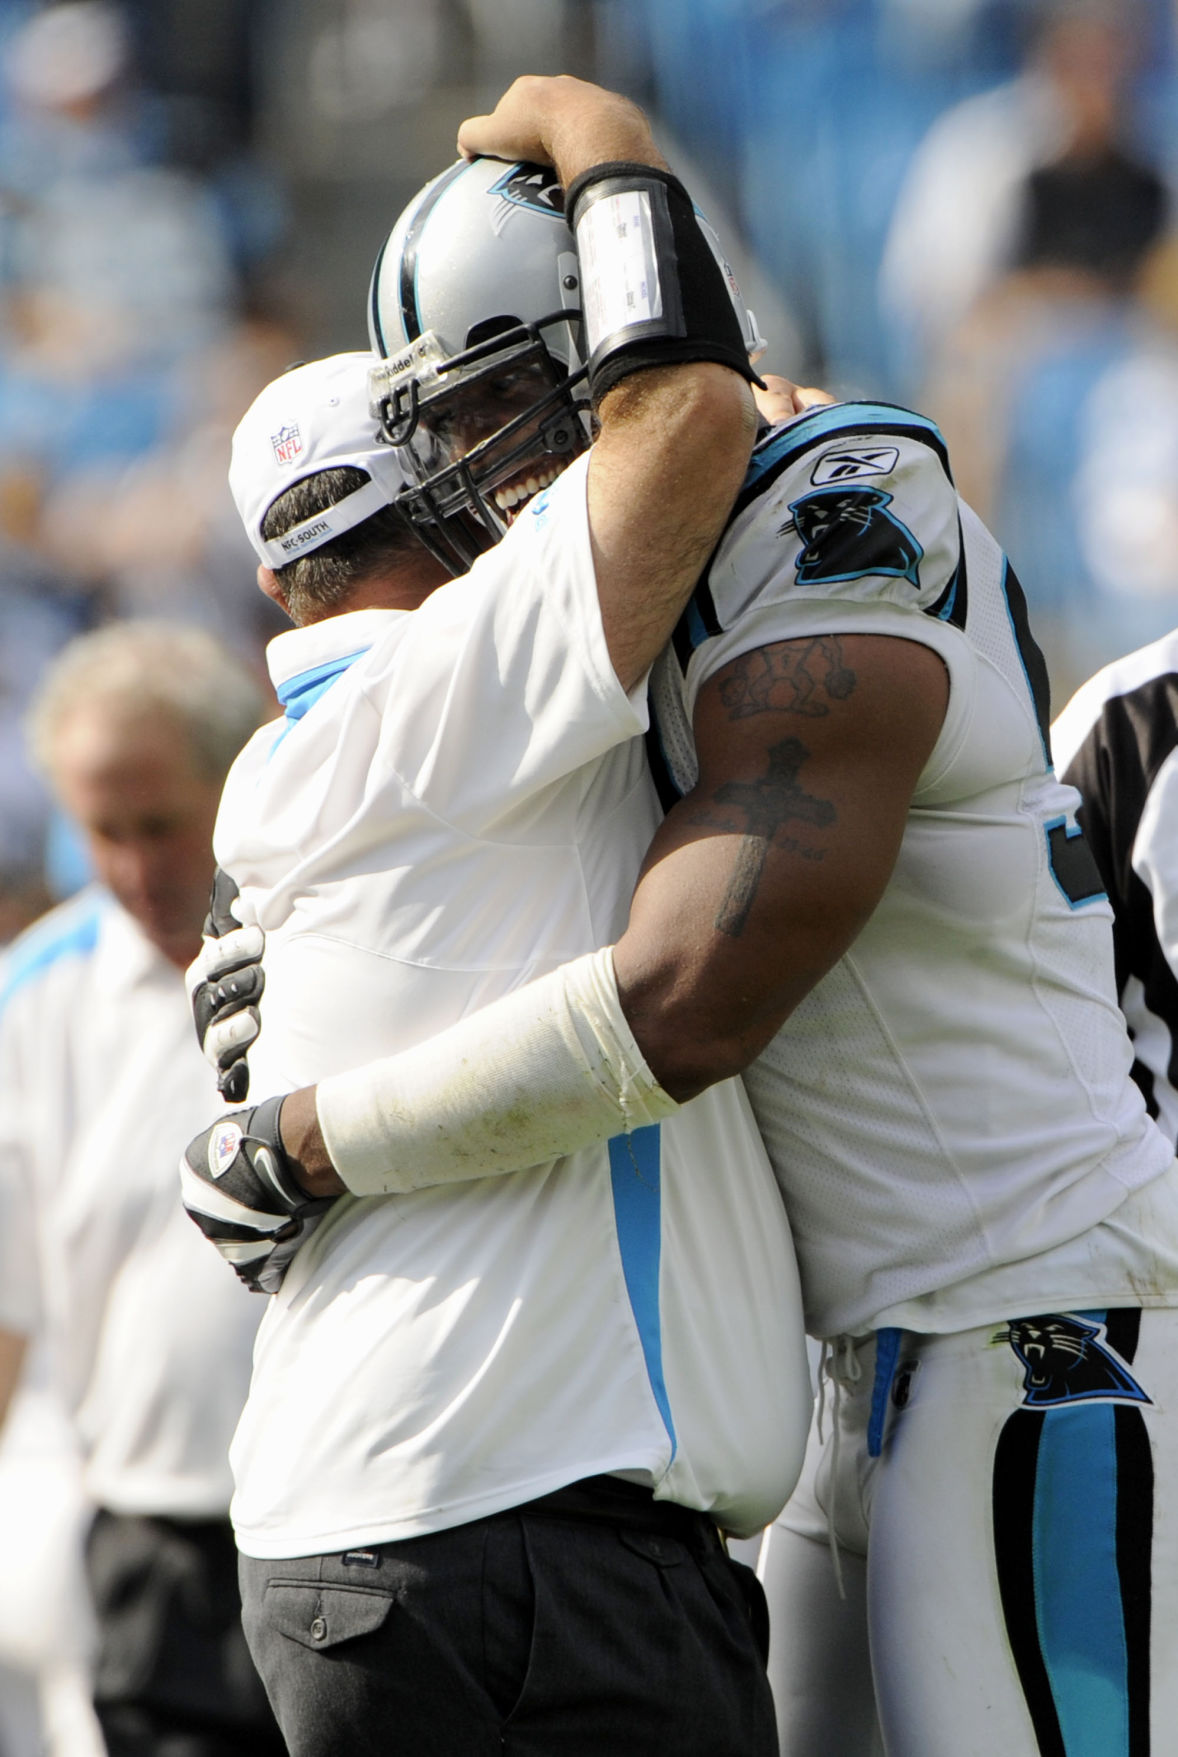 47958d465 Journal Photo by Bruce Chapman--09/28/08-- Carolina's Julius Peppers is  greeting by a member of the coaching staff during the 4th quarter at Bank  of America ...